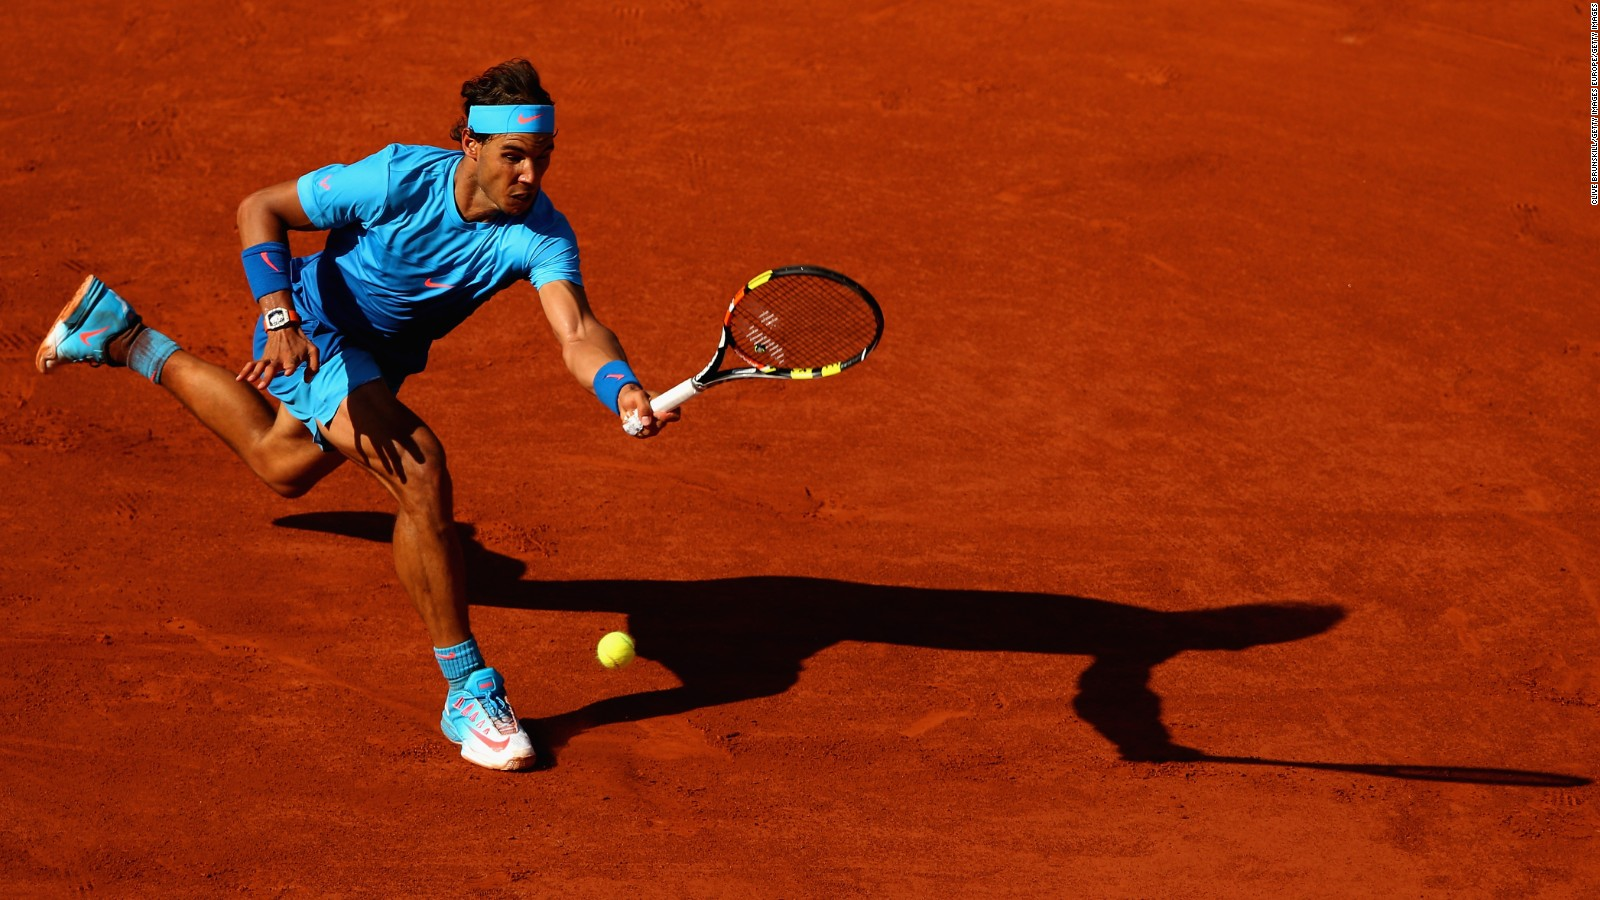 injured rafael nadal pulls out of french open - cnn